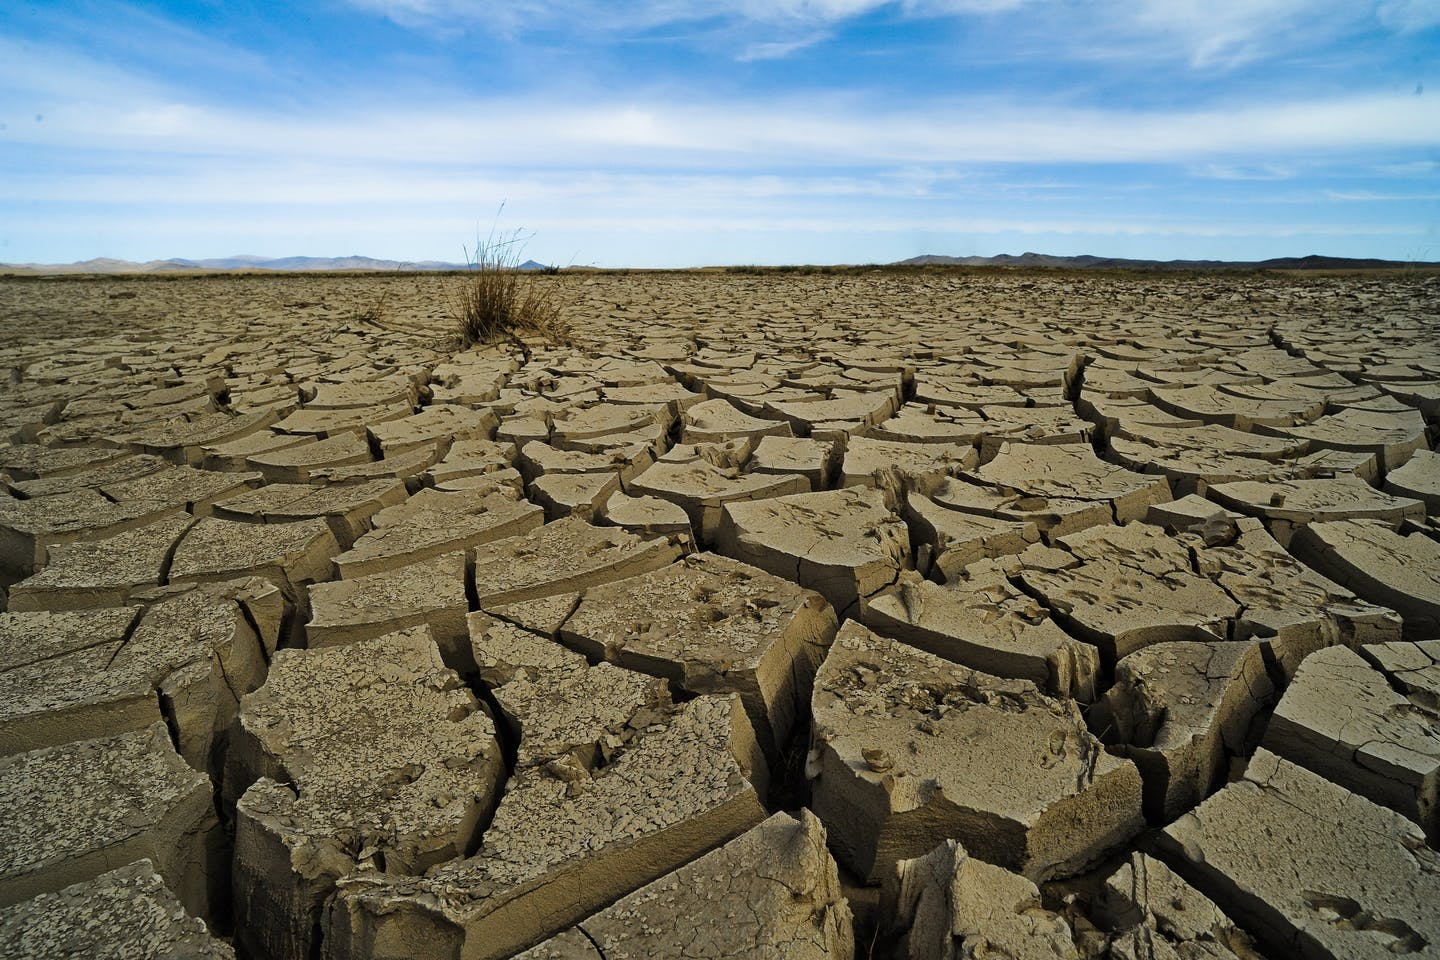 Climate change-induced drought in Mongolia